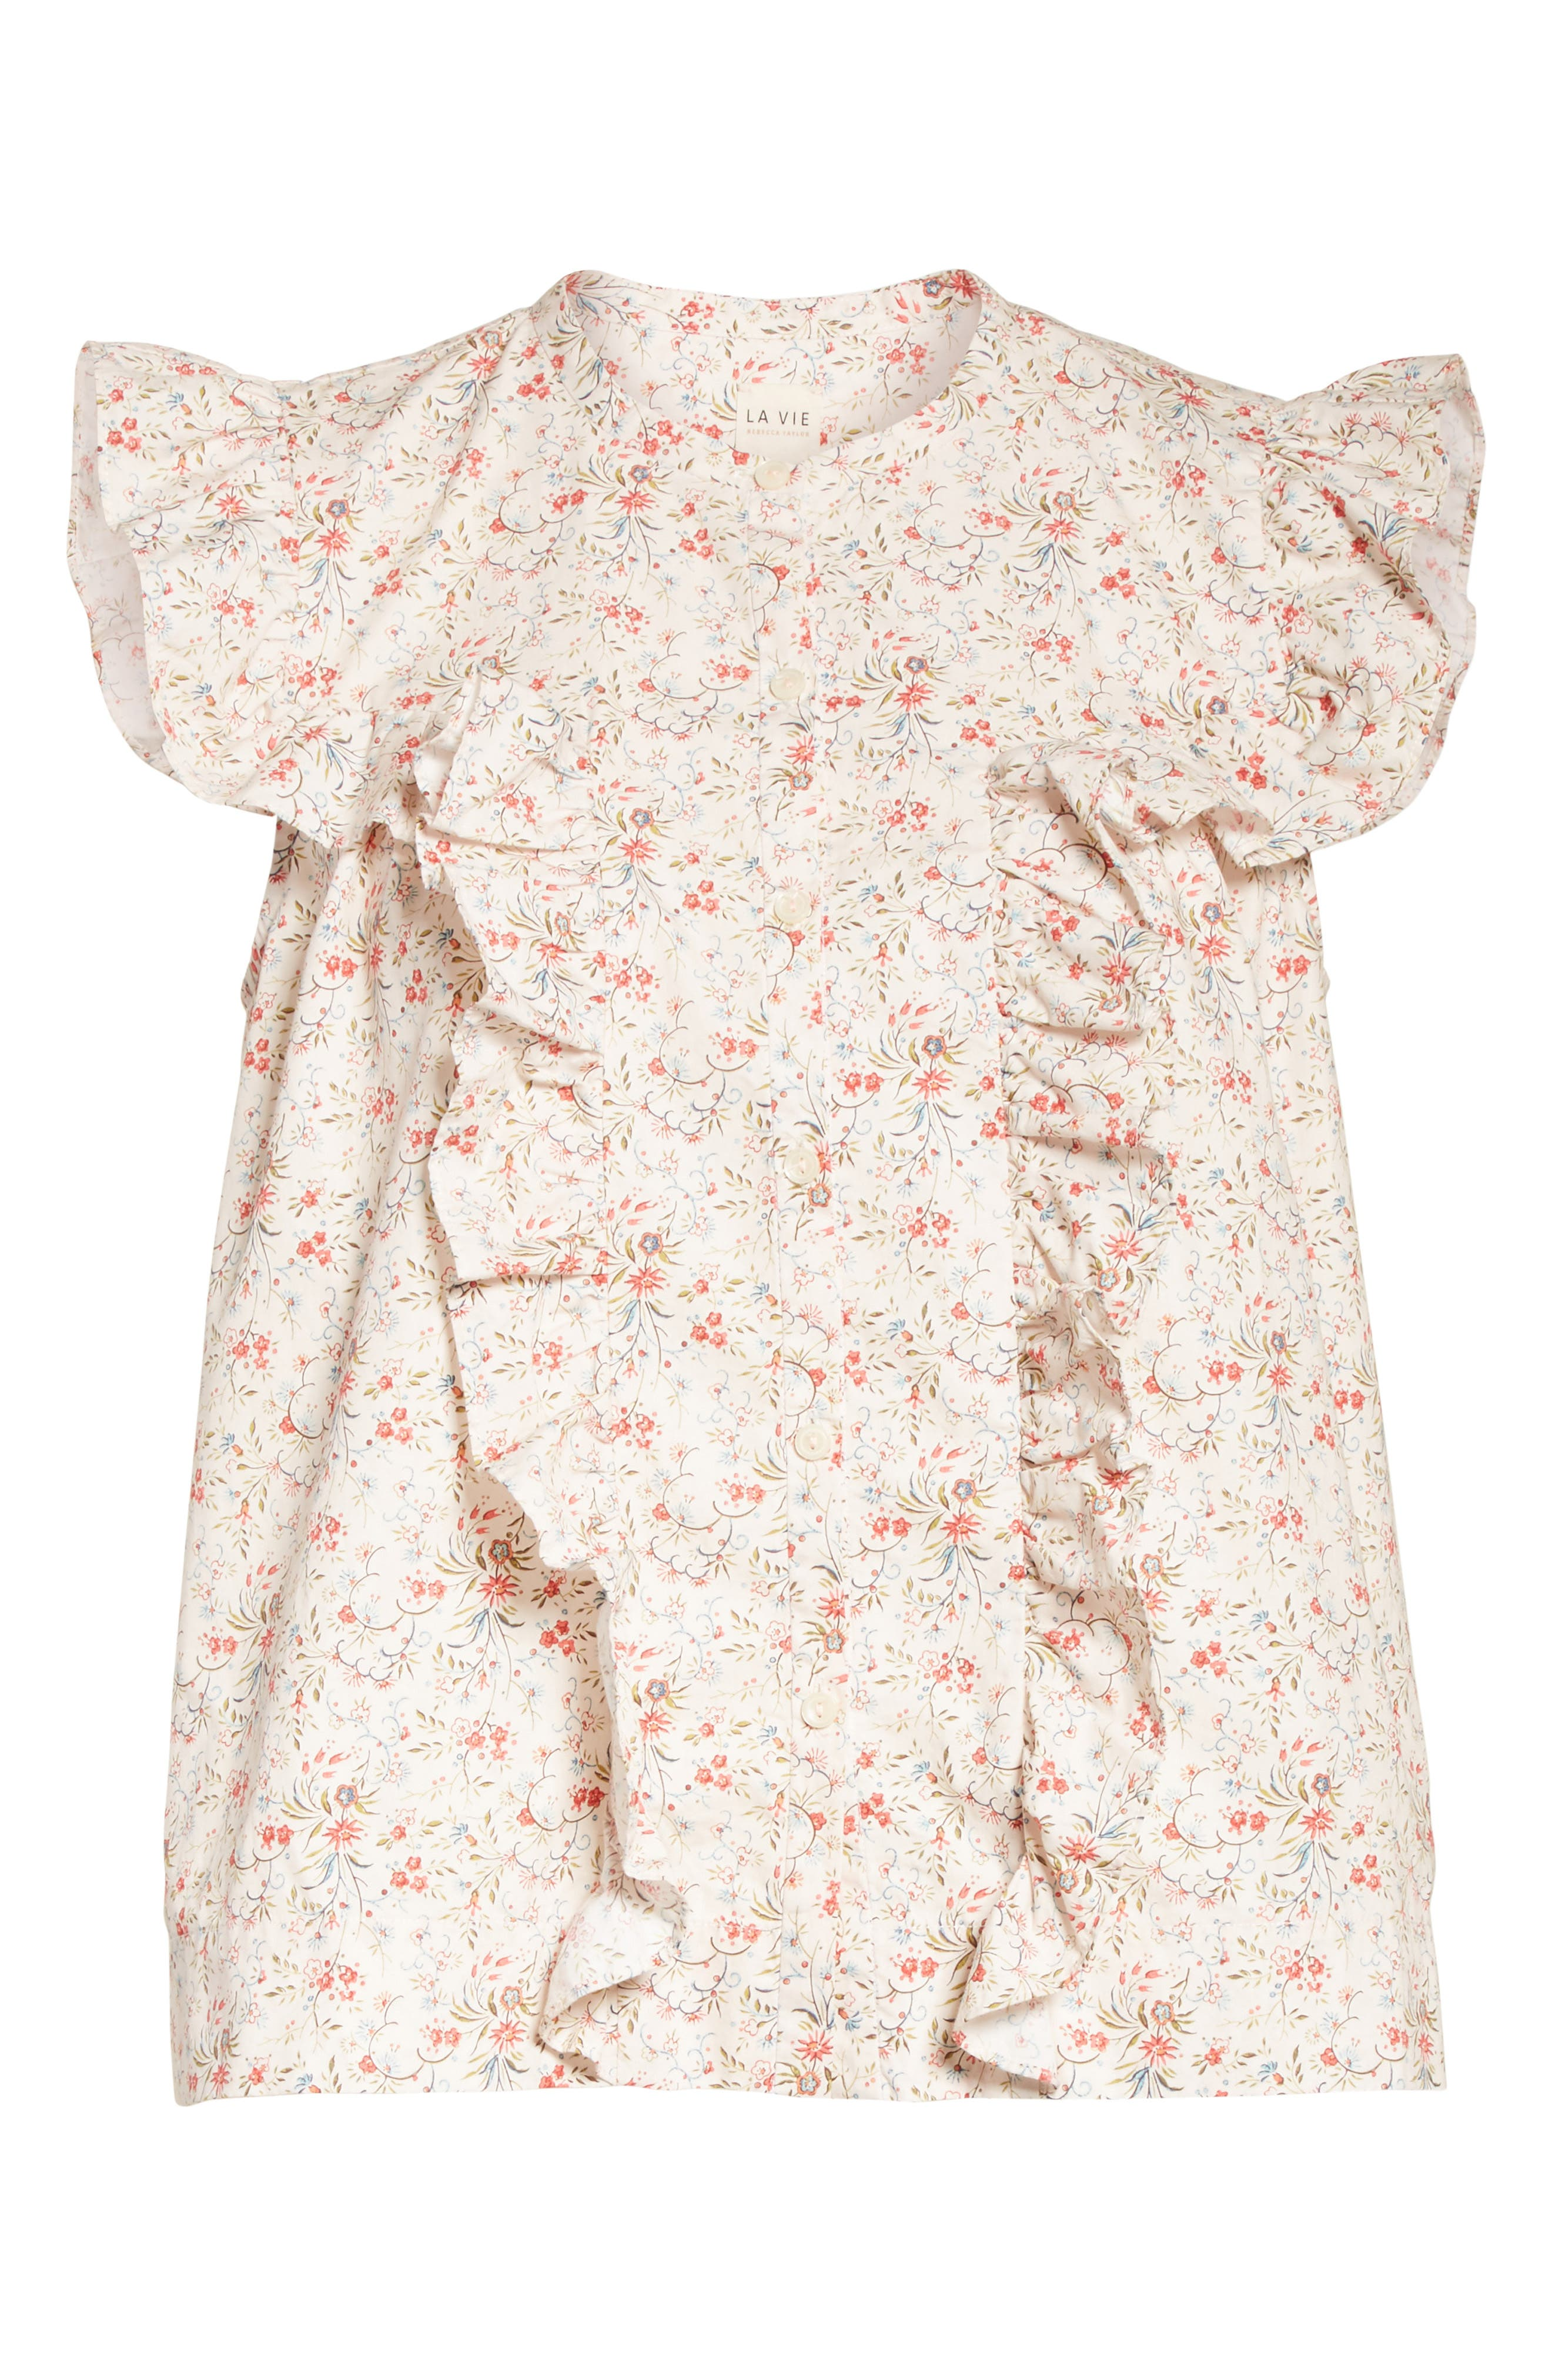 Brittany Sleeveless Floral Blouse,                             Alternate thumbnail 6, color,                             902